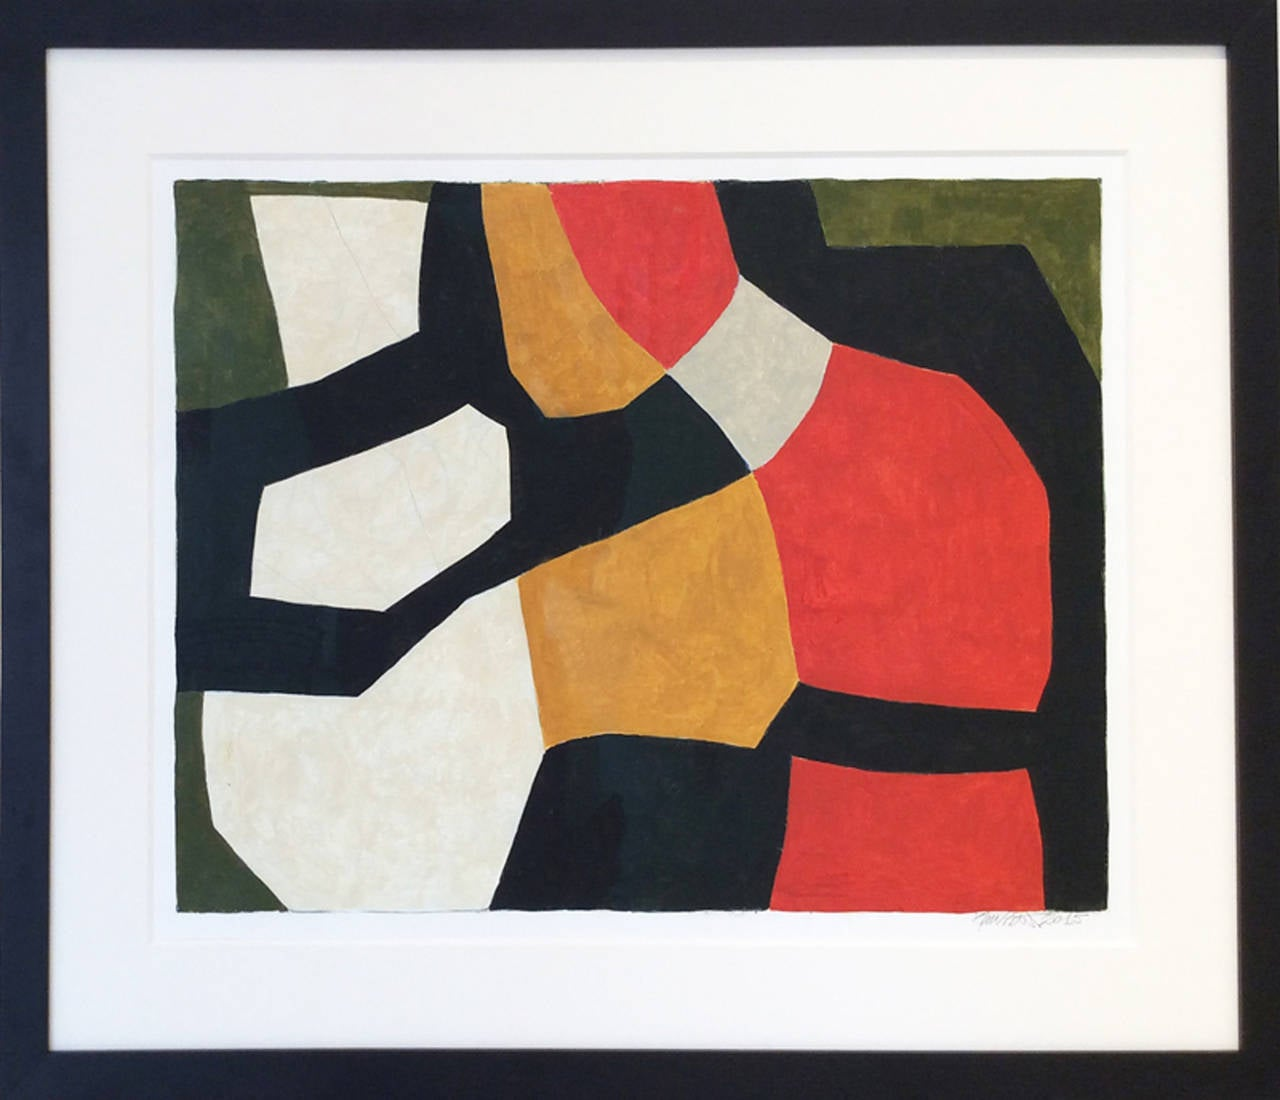 Abstract, mid-century modern style painting on paper 18.25 x 24 inches acrylic on Arches paper Framed in black wood framed, white 8 ply mat, AR non glare glass Paper size is 22 x 30 inches, 27.5 x 33 inches framed  This abstract geometric painting